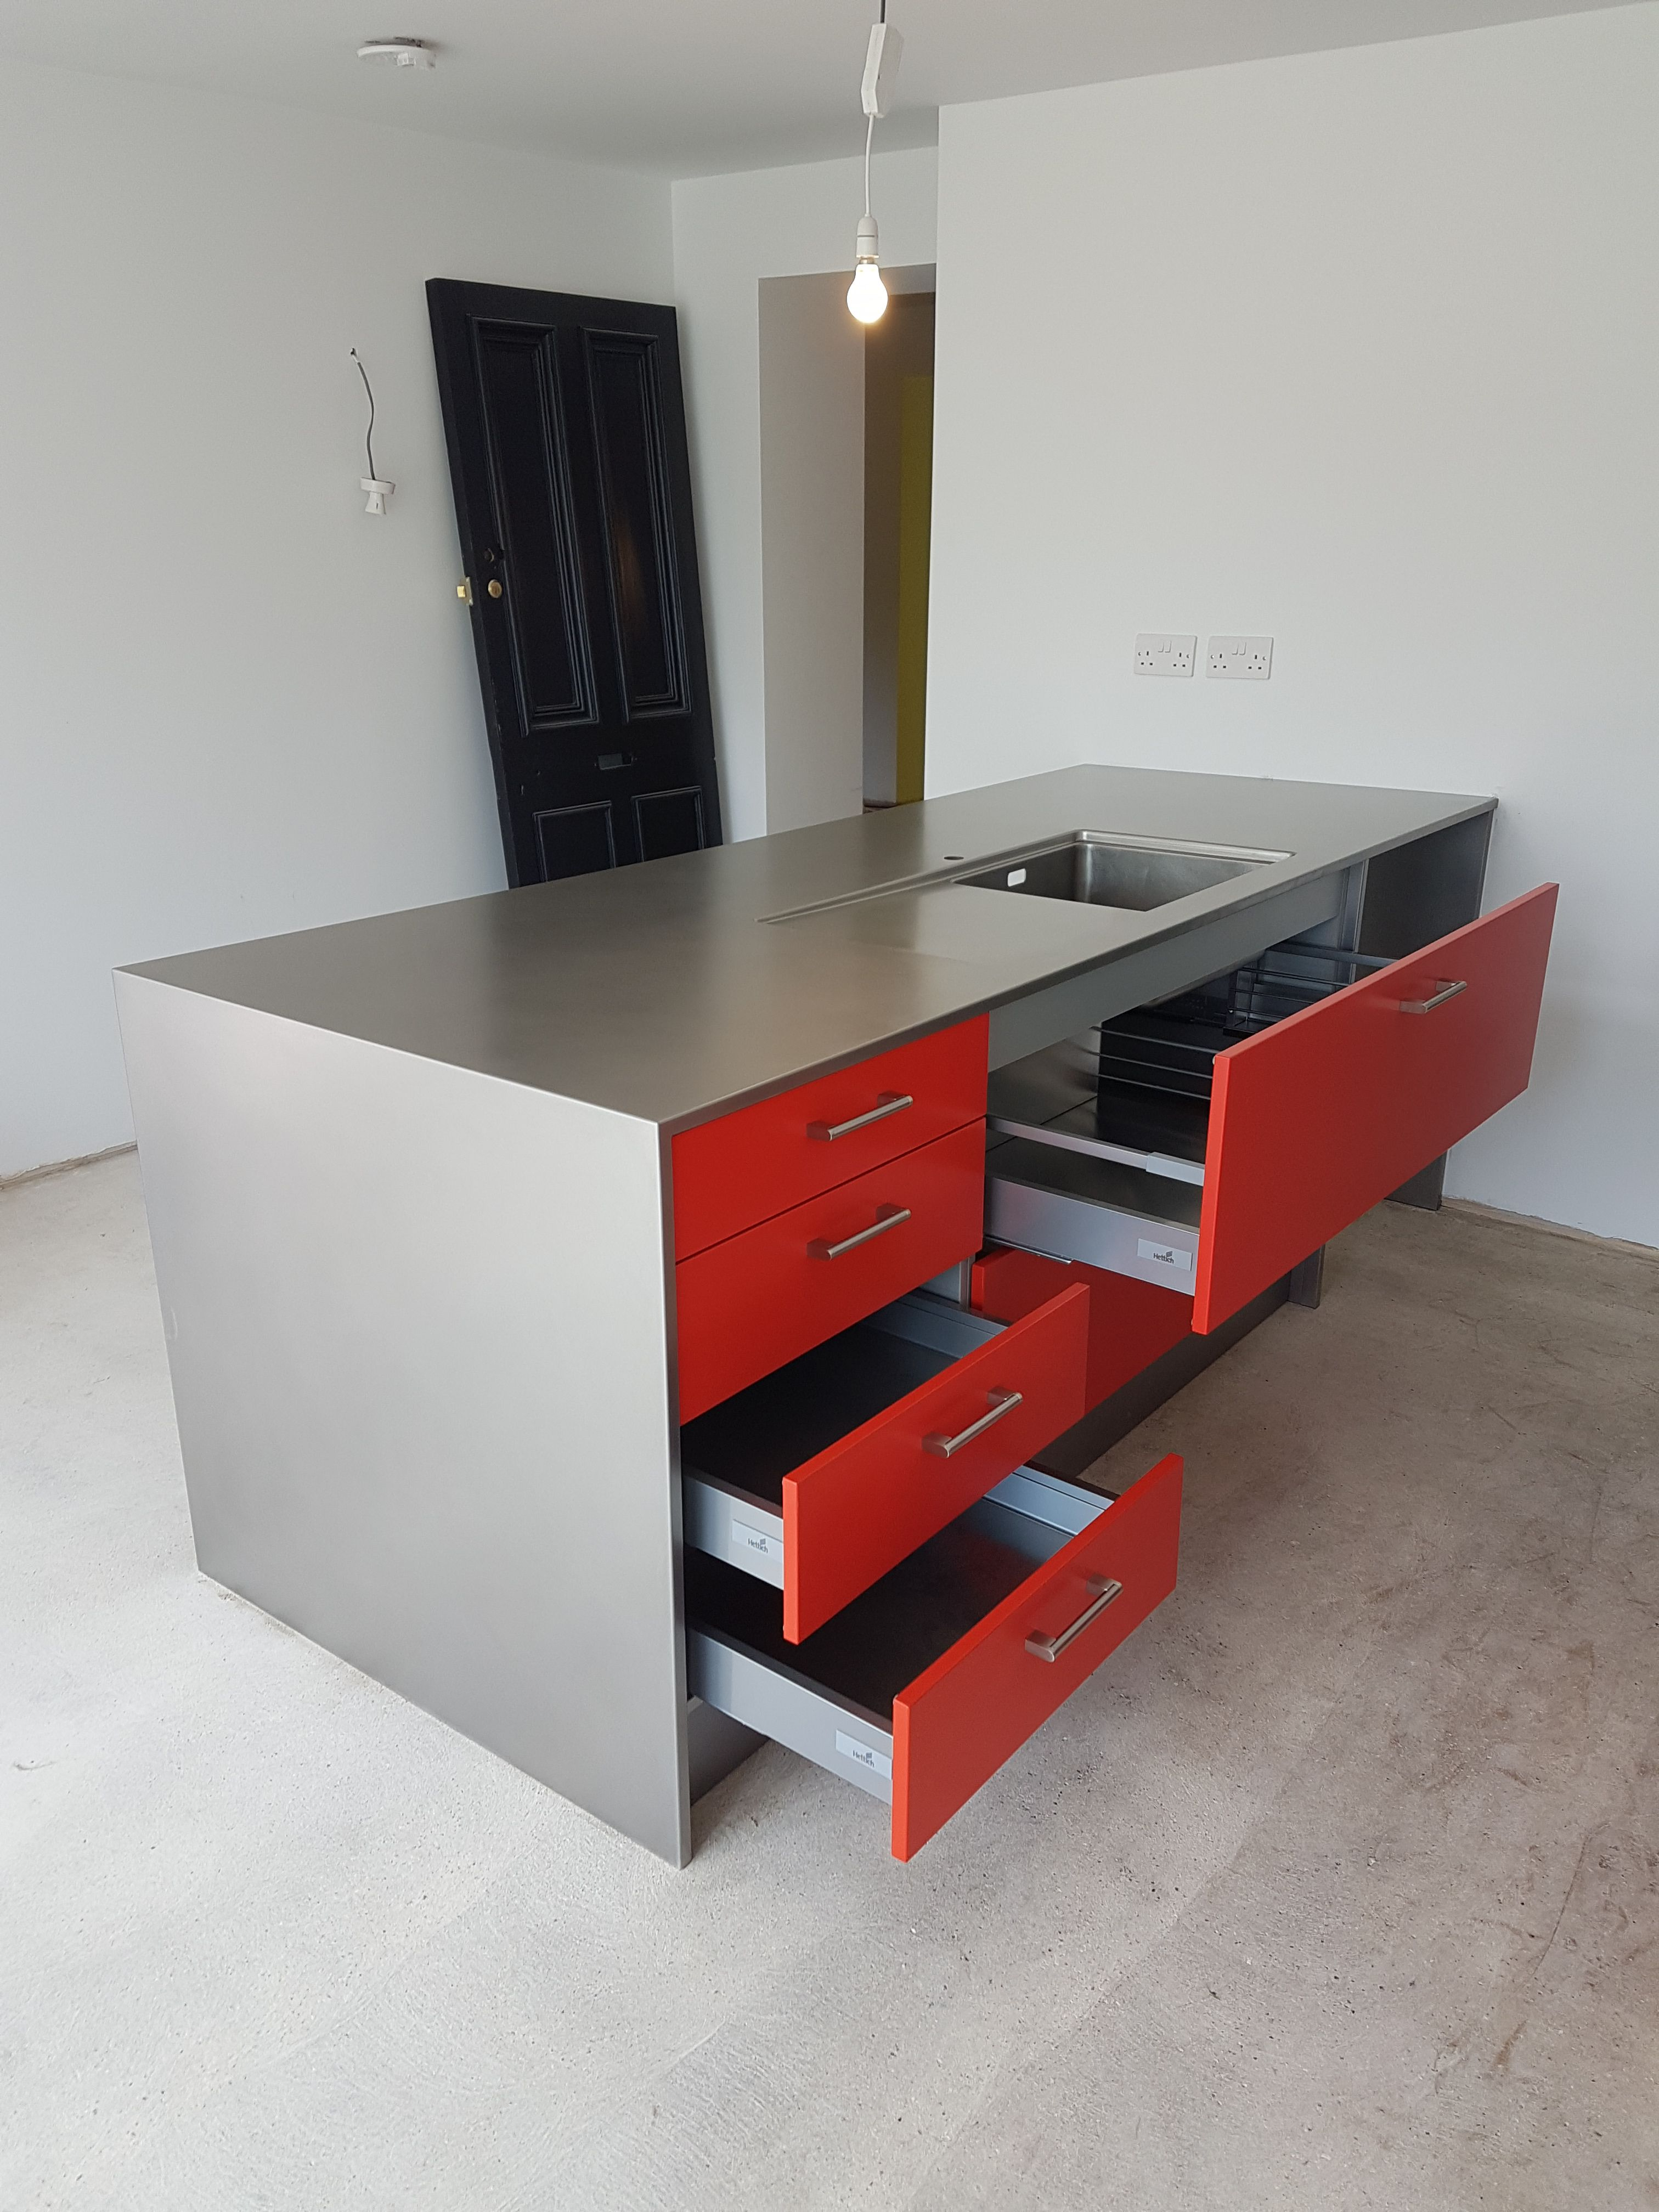 Hybrid Stainless Steel Kitchen Installation With Powder Coated Red Door And  Drawer Fascia Panels  1